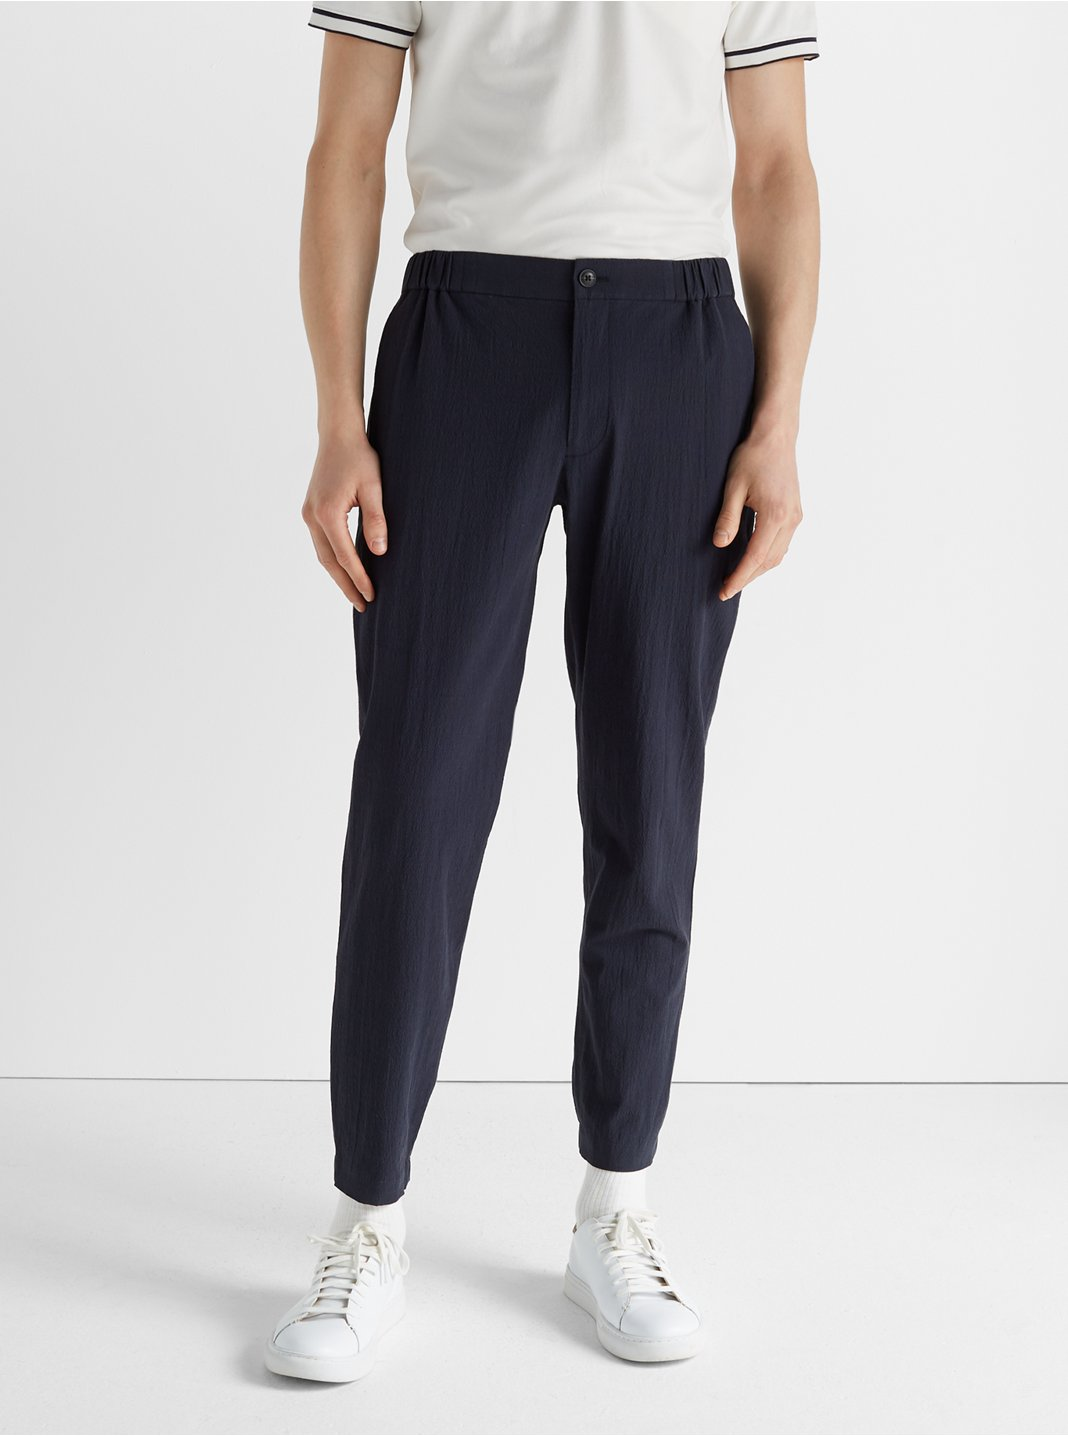 Lex Textured Pants